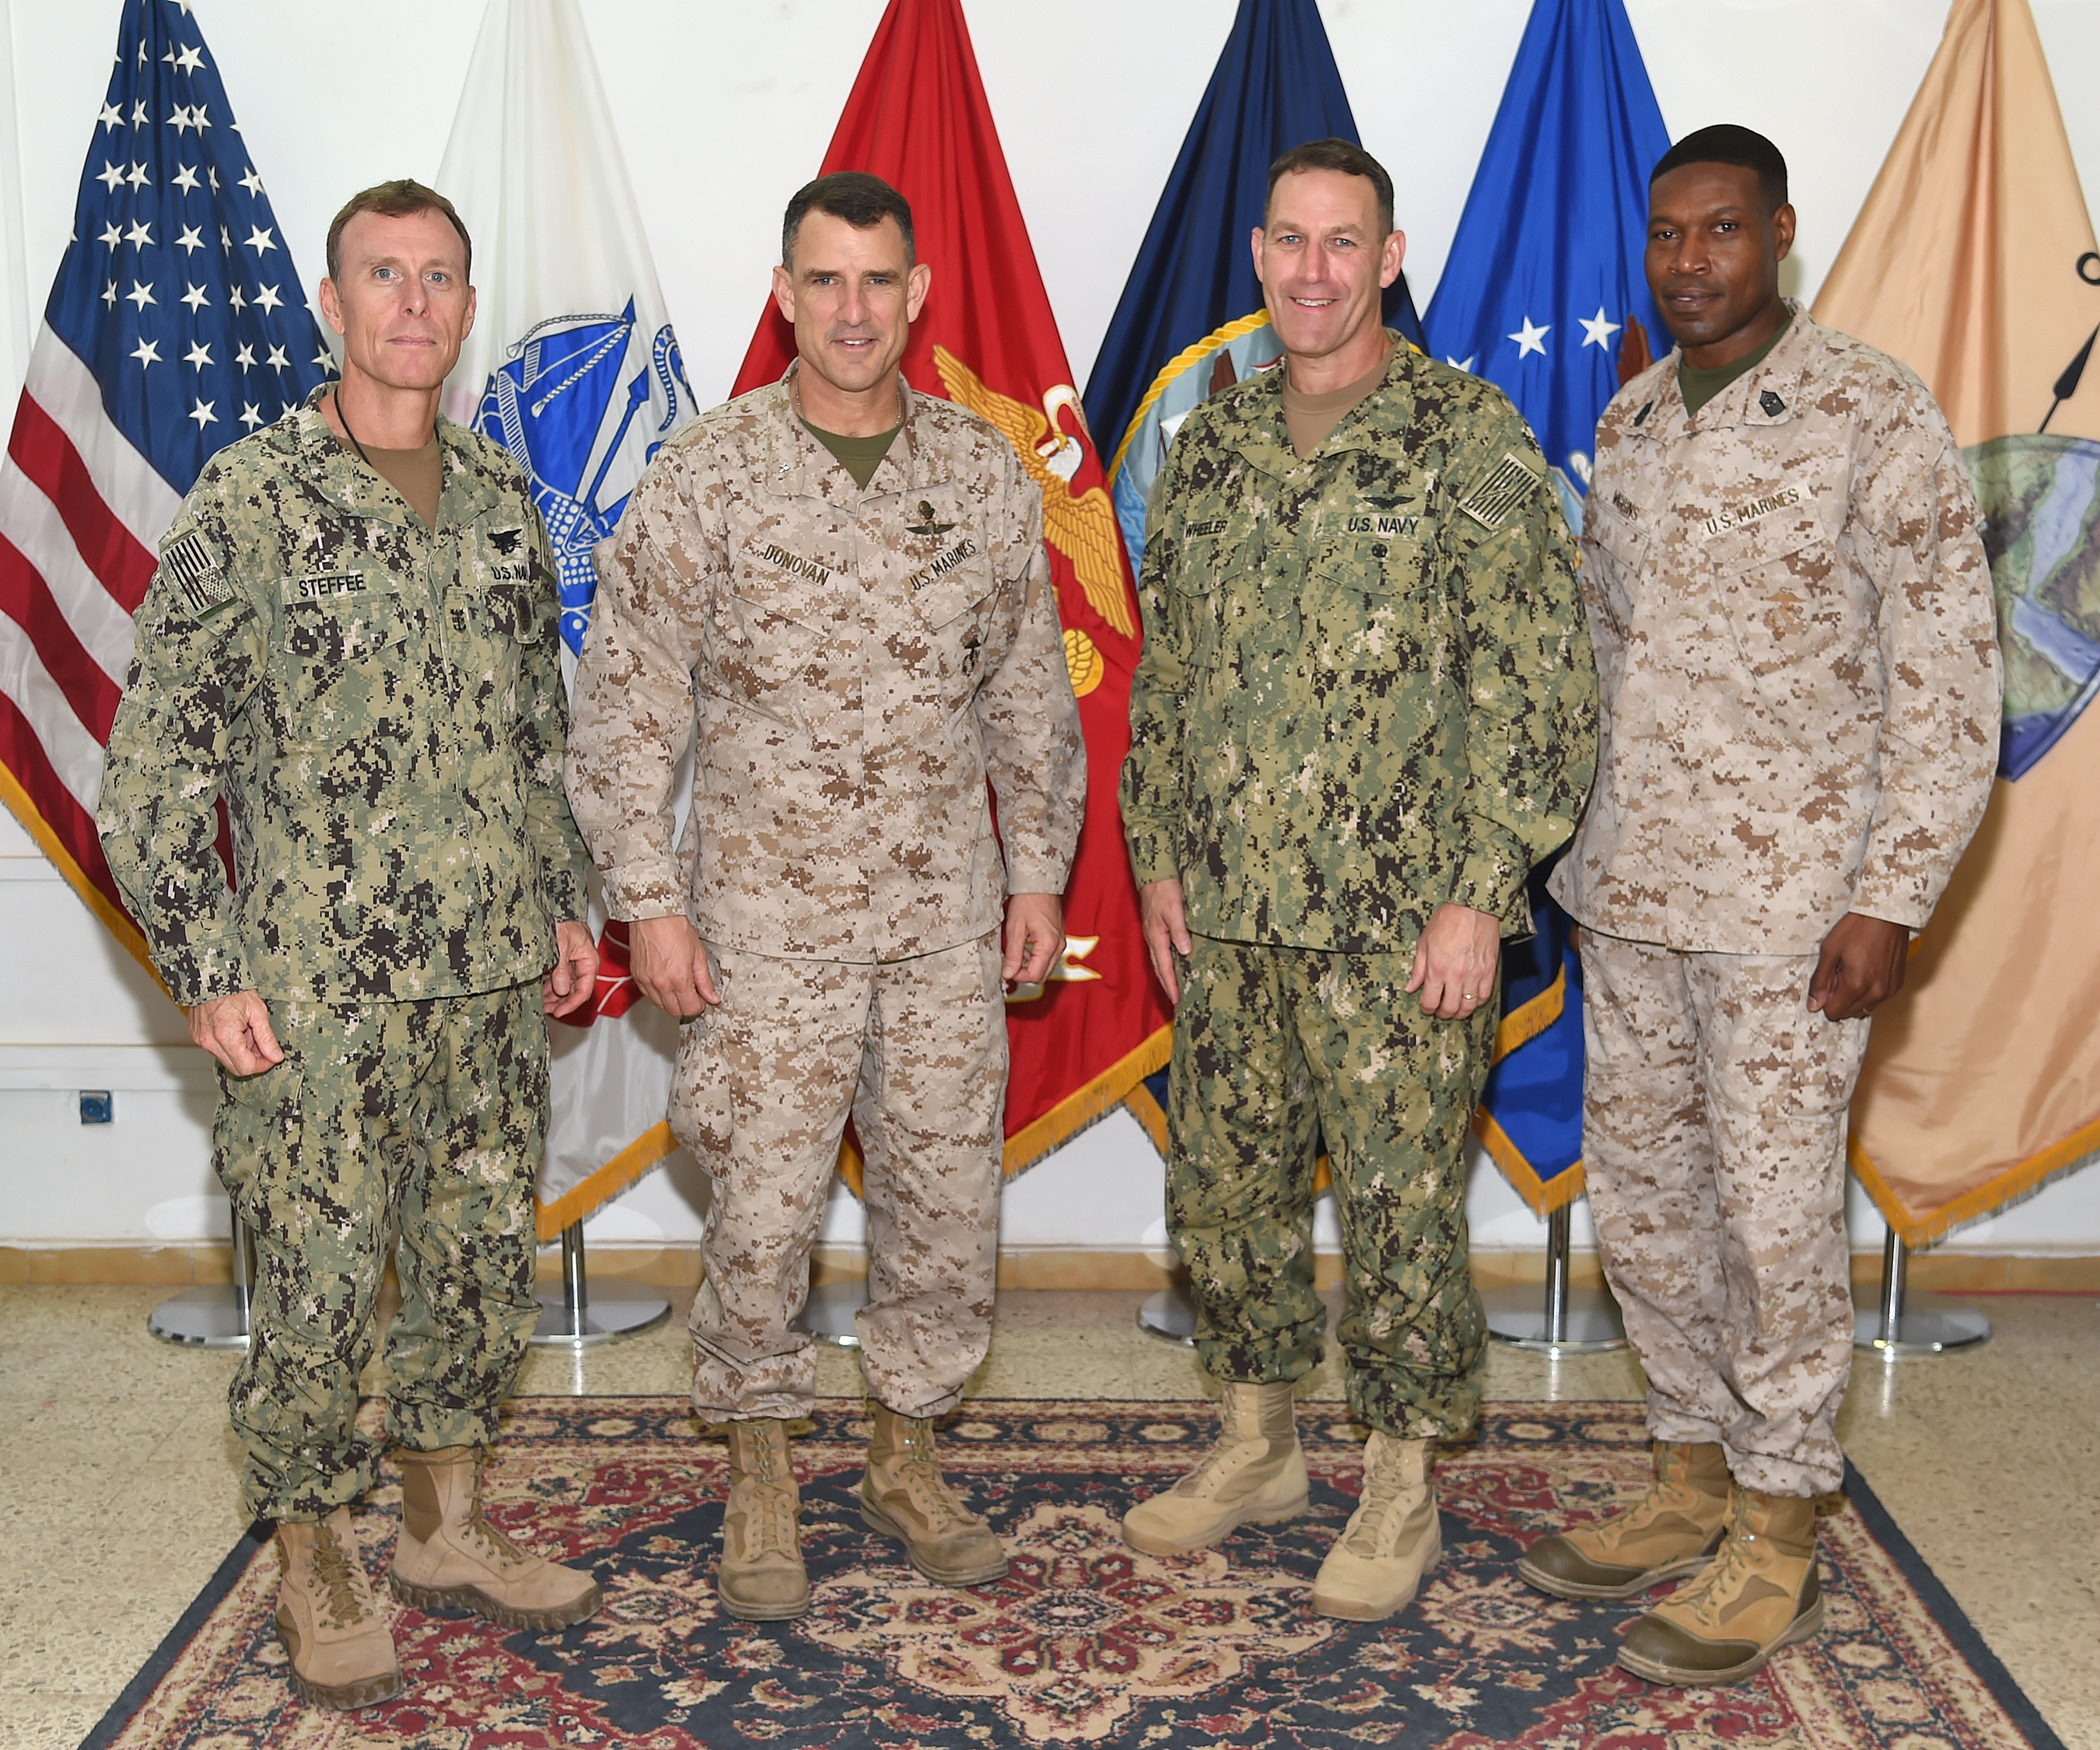 5th Marine Expeditionary Brigade and Combined Task Force 51 Commander, Brig. Gen. Francis Donovan, and Command Sgt. Maj. Clifford Wiggins, 5th MEB and CTF-51 command sergeant major, meet with Combined Joint Task Force - Horn of Africa Deputy Commander, Rear Adm. William Wheeler and CJTF-HOA Command Senior Enlisted Leader, Command Master Chief Geoffrey Steffee during a visit to Camp Lemonnier, Djibouti Dec. 20, 2016. In addition to meeting with CJTF-HOA and Camp Lemonnier leadership, Donovan observed joint training at the Djibouti Range Complex in Arta, and met with Sailors and Marines aboard the amphibious assault ship USS Makin Island (LHD 8). (U.S. Air National Guard photo by Master Sgt. Paul Gorman)